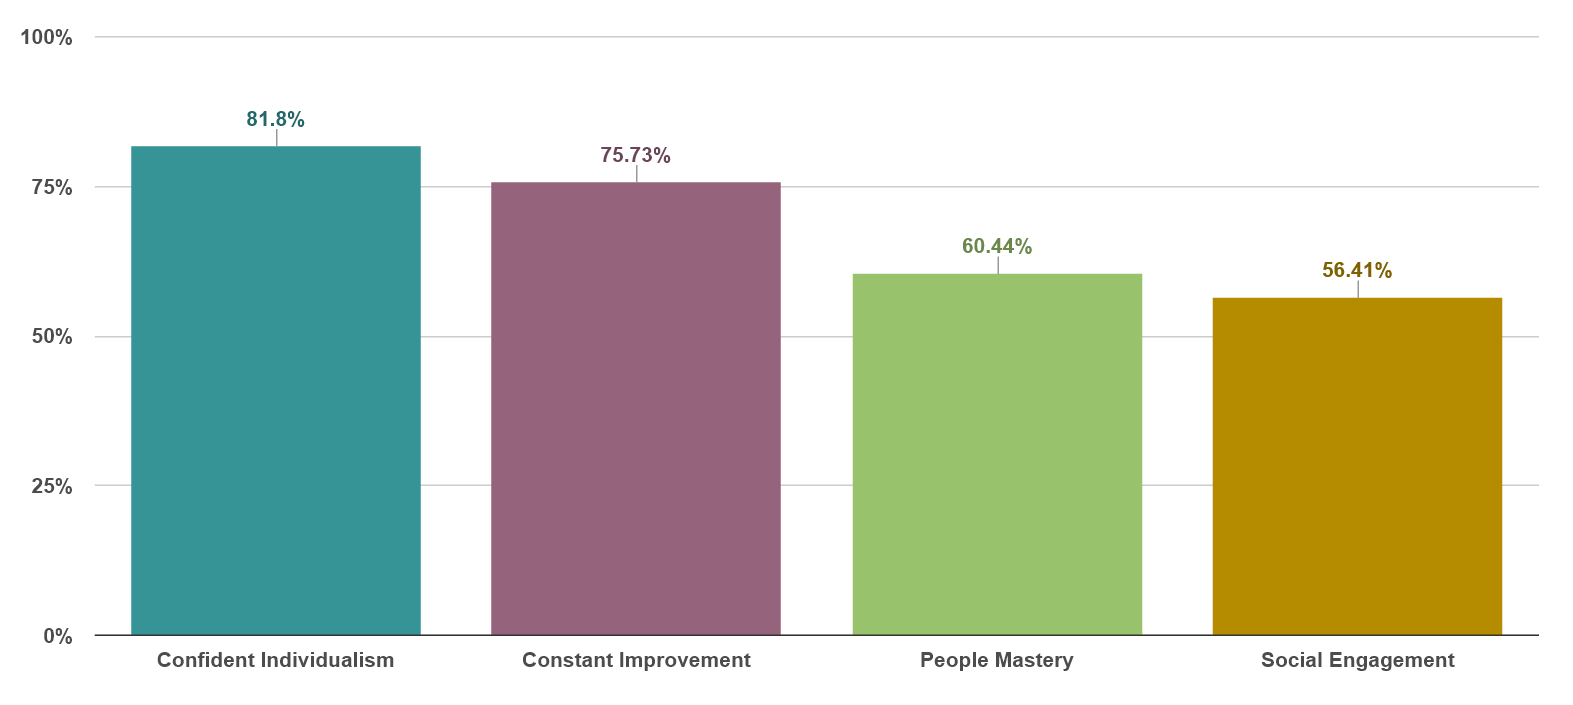 Agreement by Strategy: Confident Individualism 82%, Constant Improvement 76%, People Mastery 60%, Social Engagement 56%.